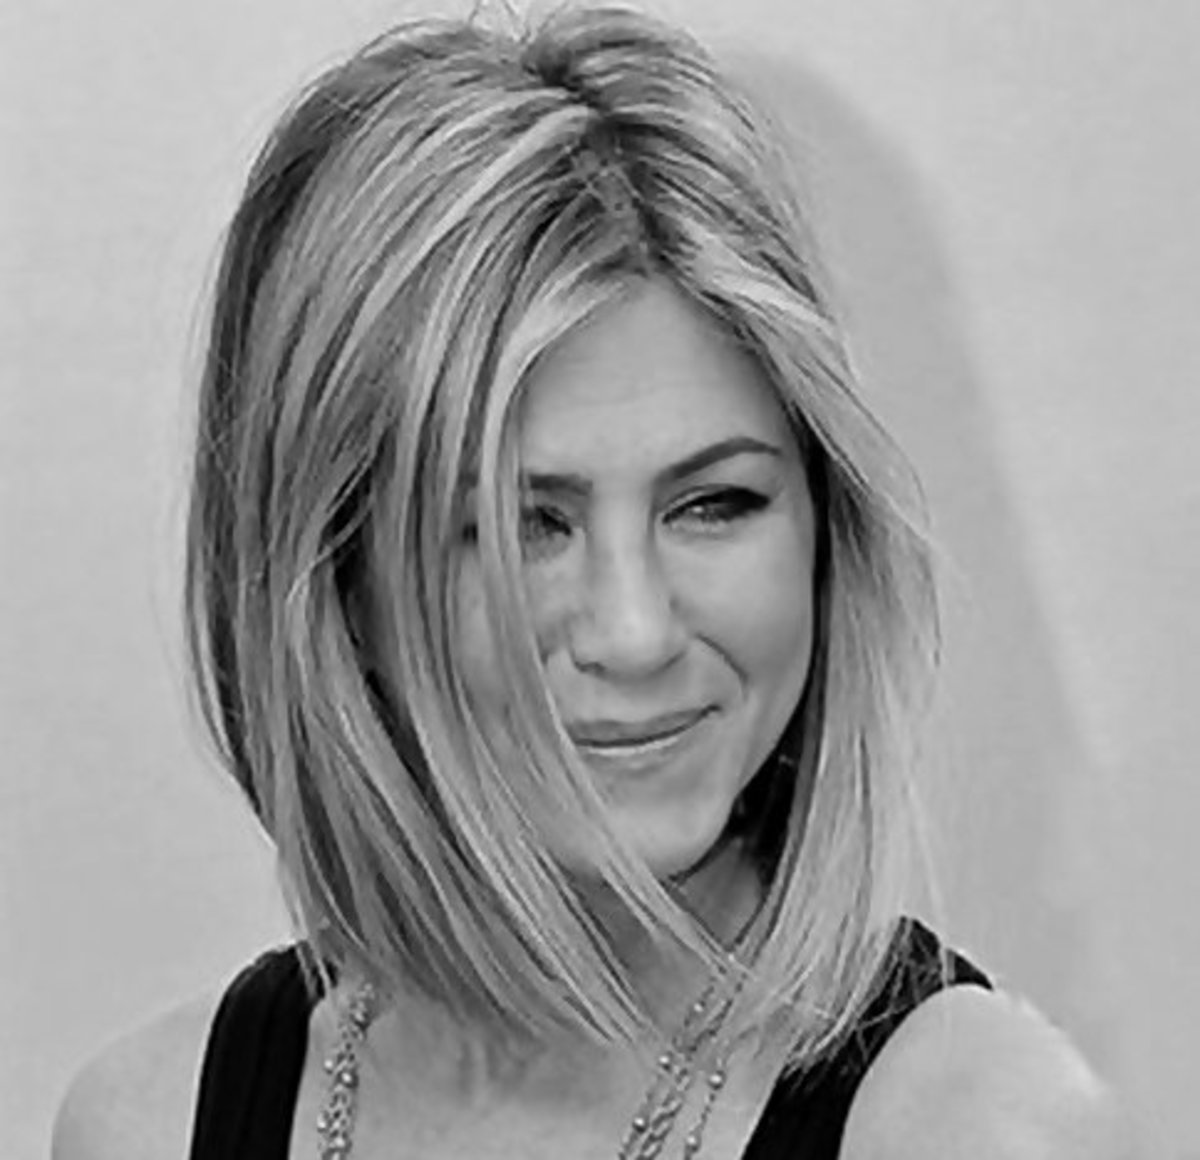 Hair Cuts on 2012 Hairstyles For Women With Medium Length Hair Style Cuts